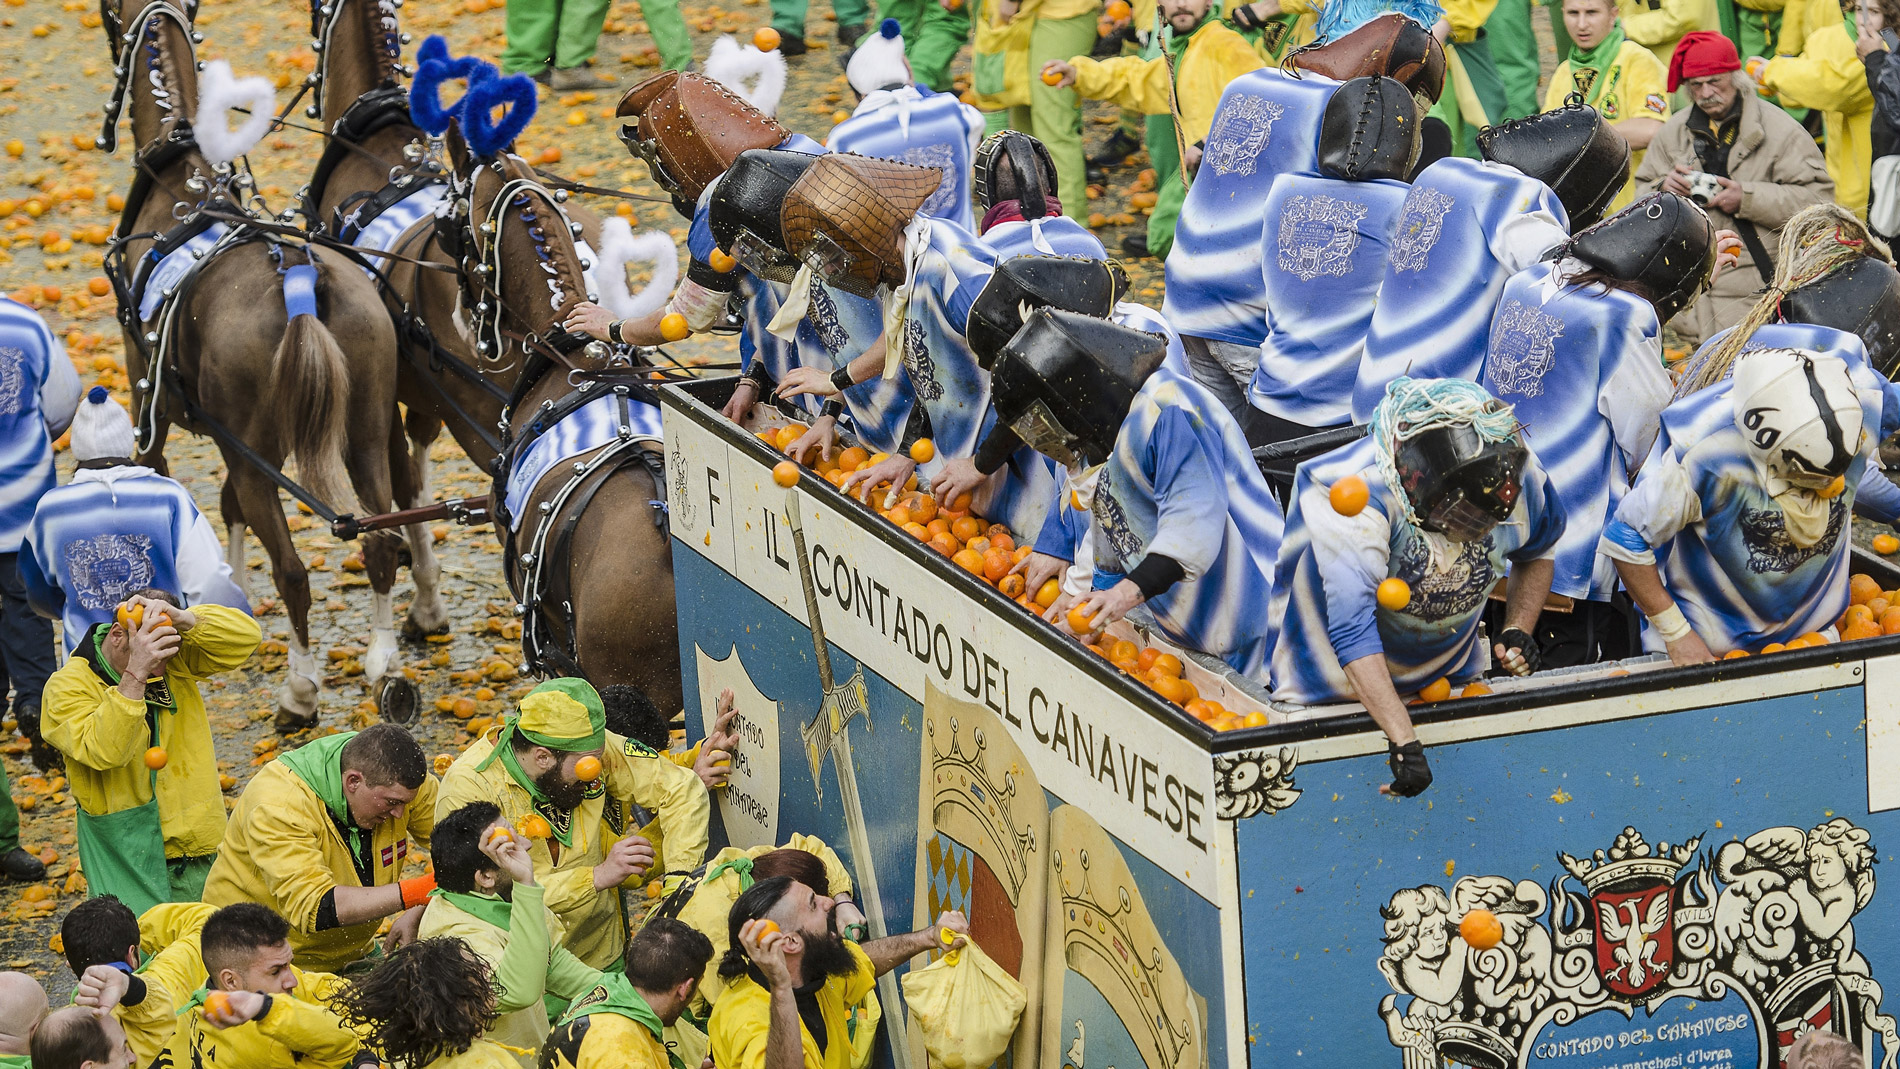 Italy's Battle of the Oranges